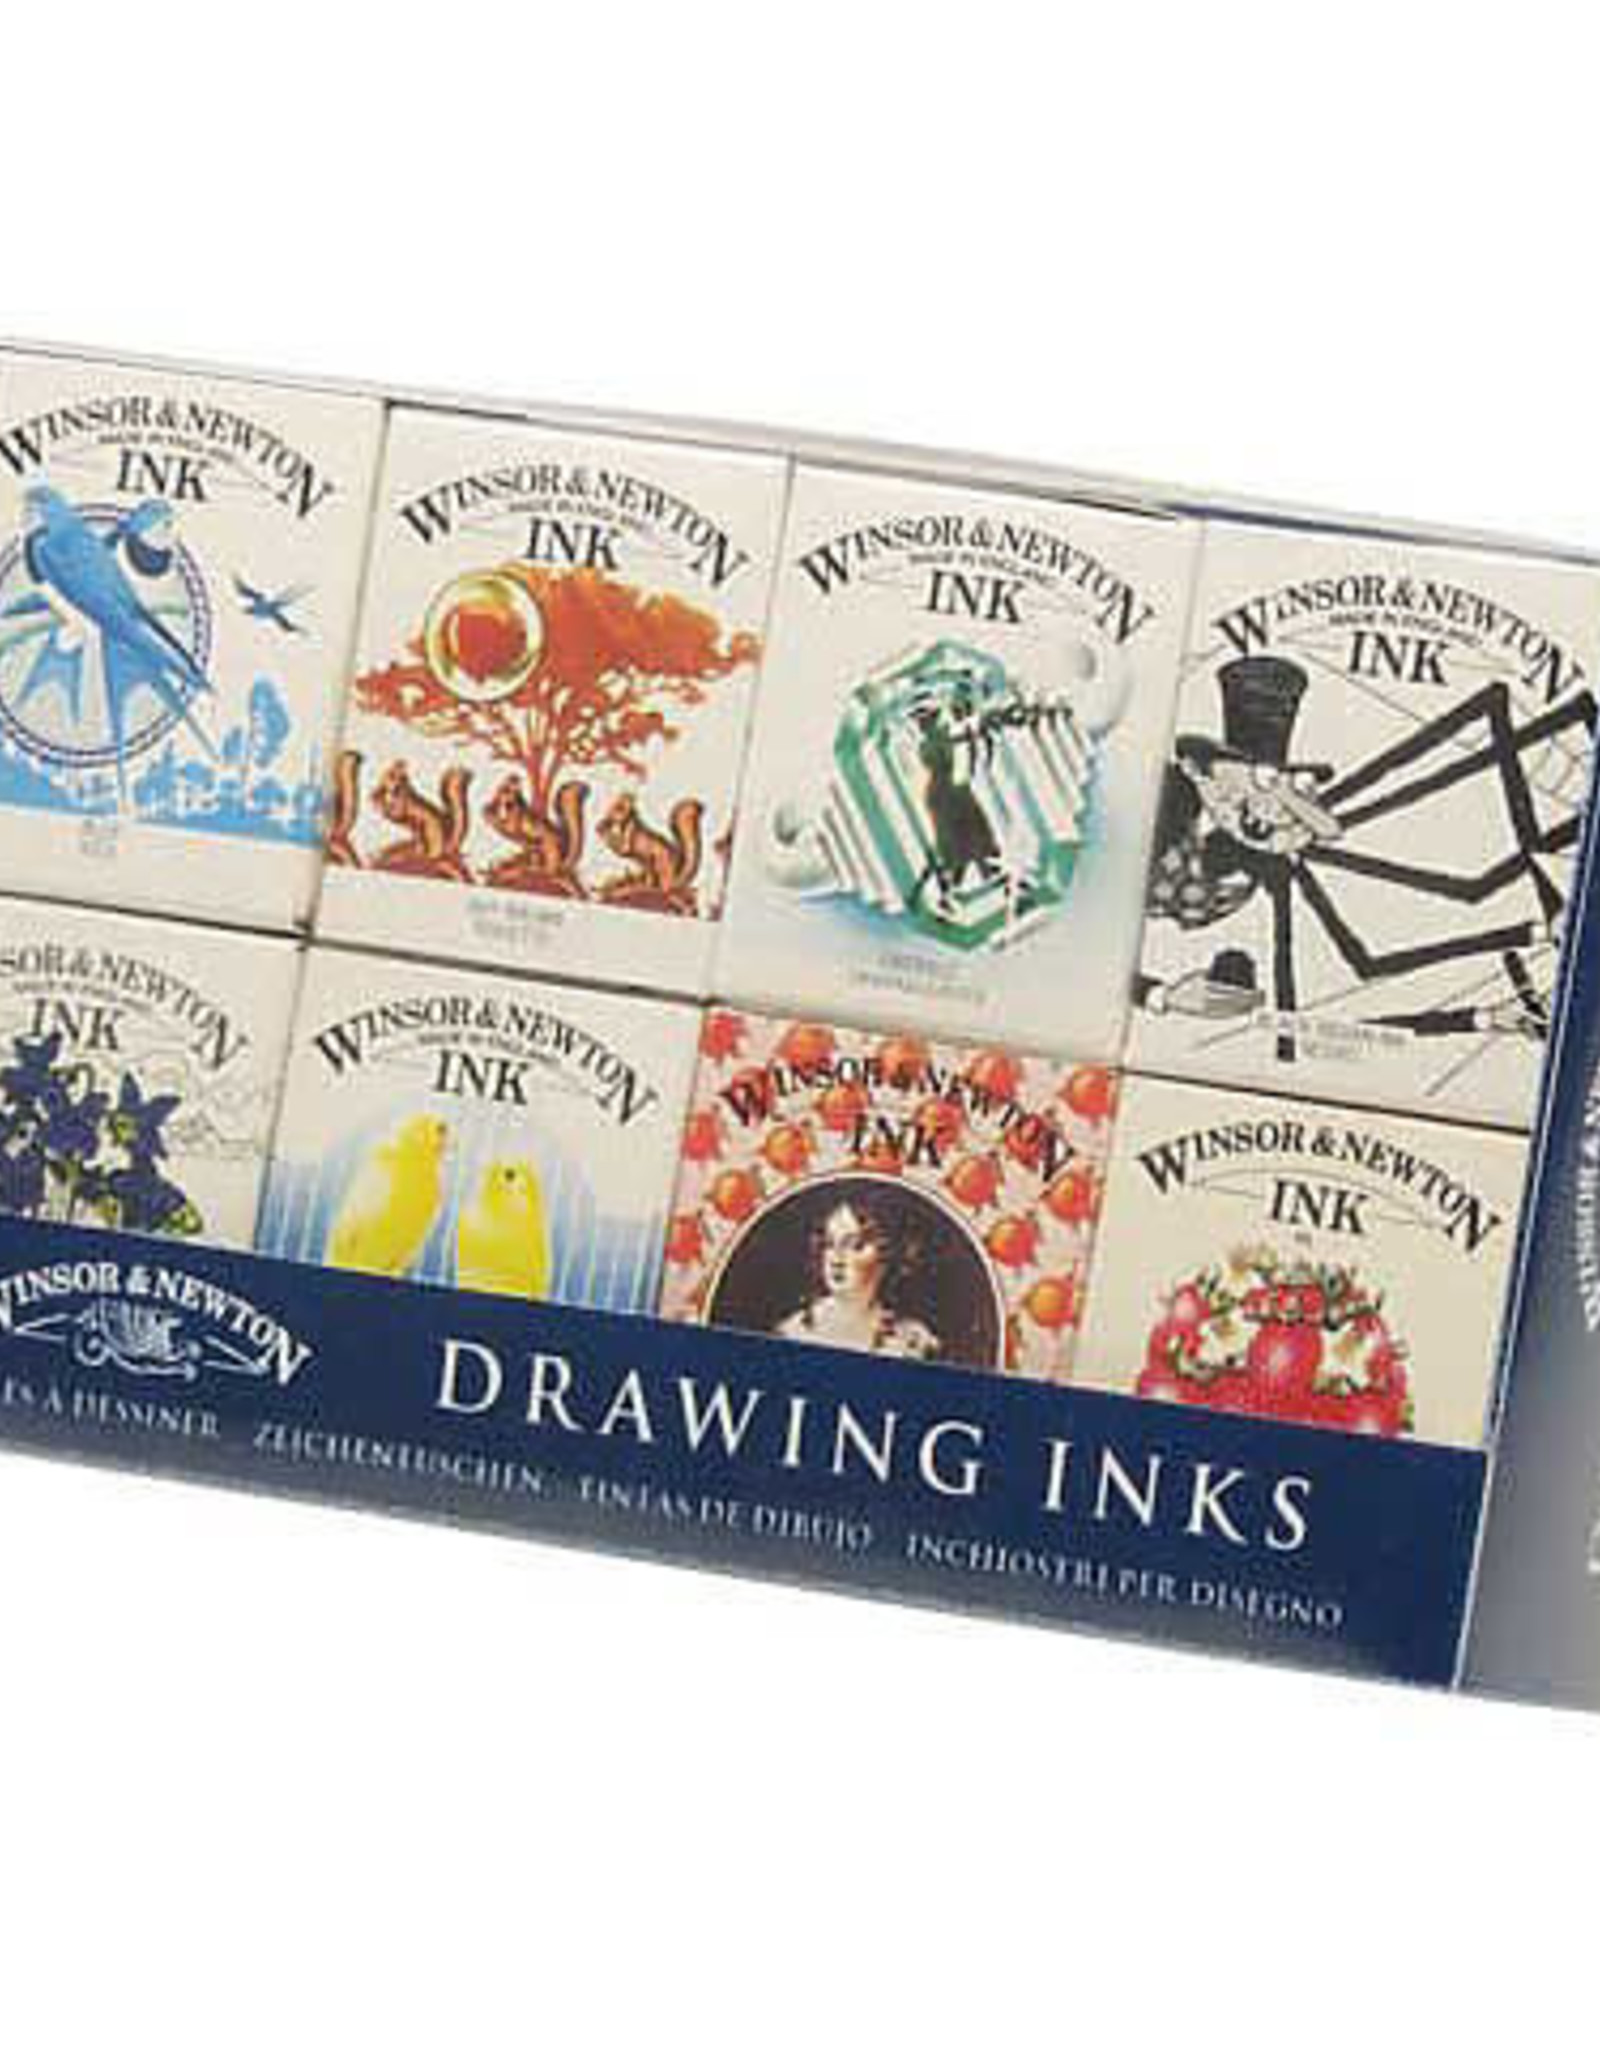 Winsor & Newton Introductory Drawing Ink Set